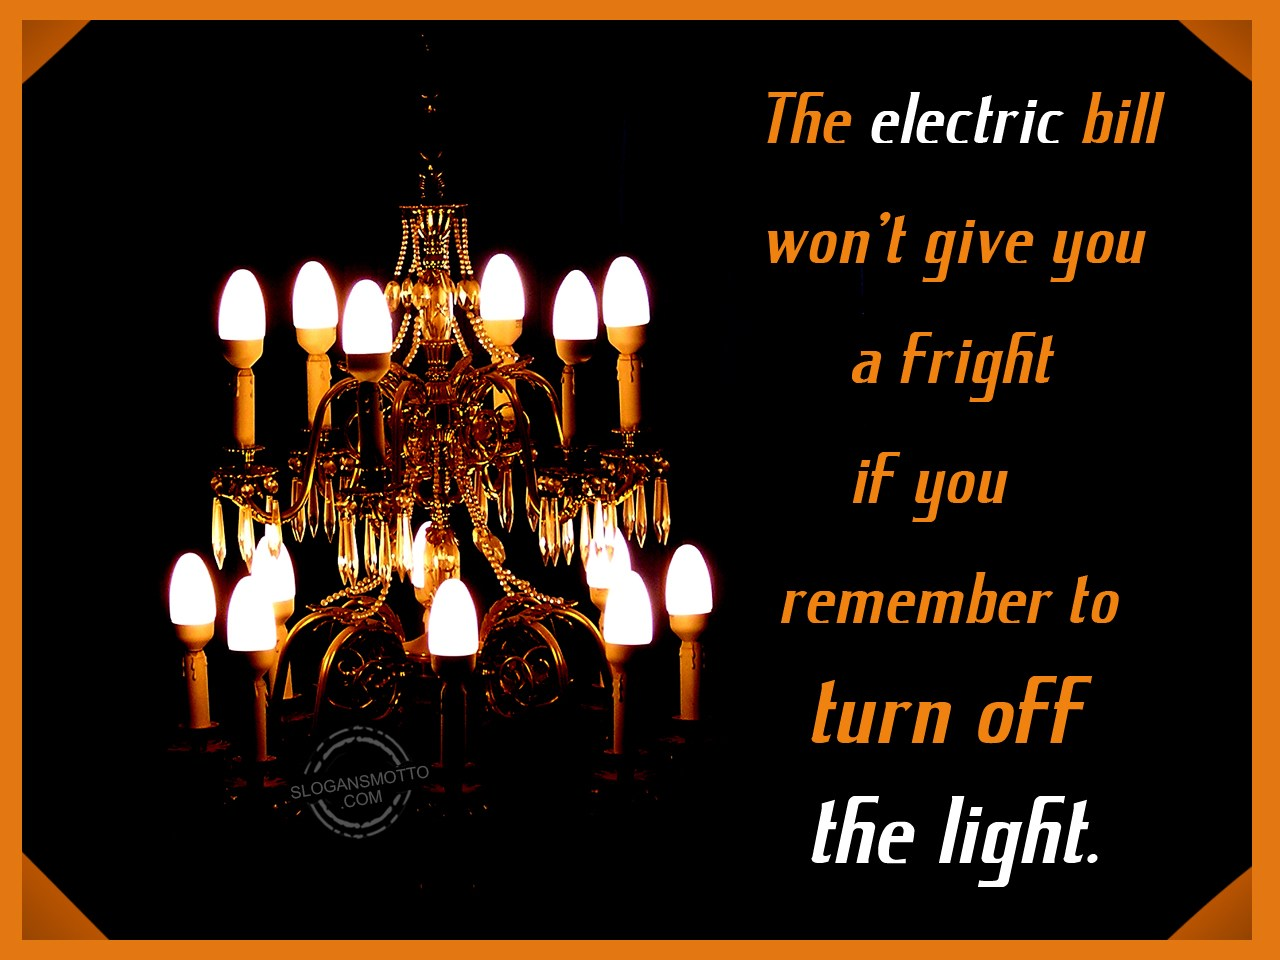 Save Electricity Slogans Electrical Ceilling Light Wont Switch Off After A New Installation The Electric Bill Give You Fright If Remember To Turn